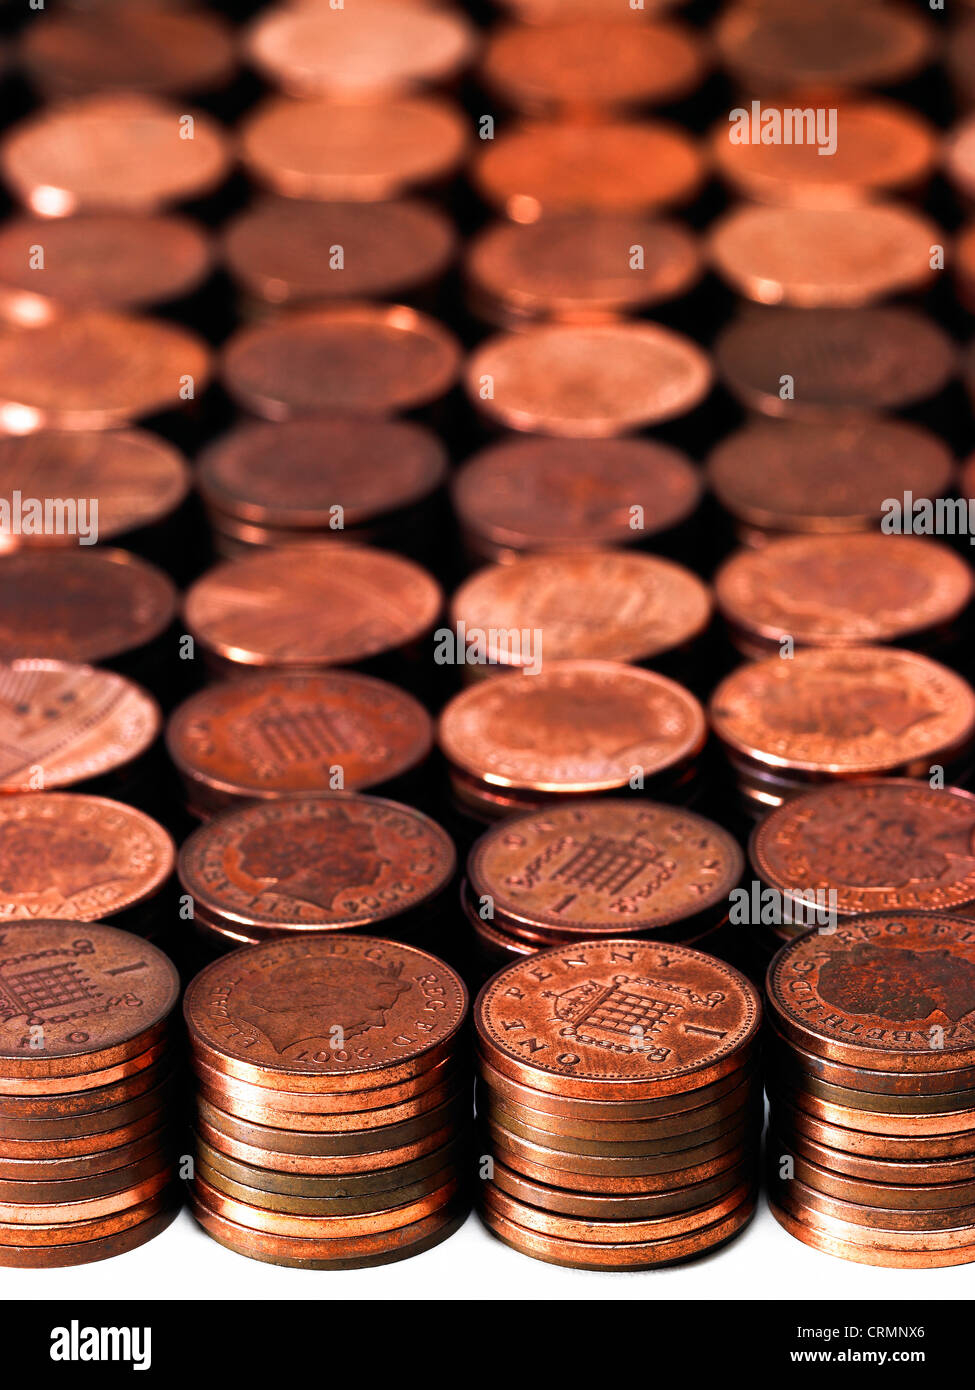 Neat piles of British pennies - Stock Image